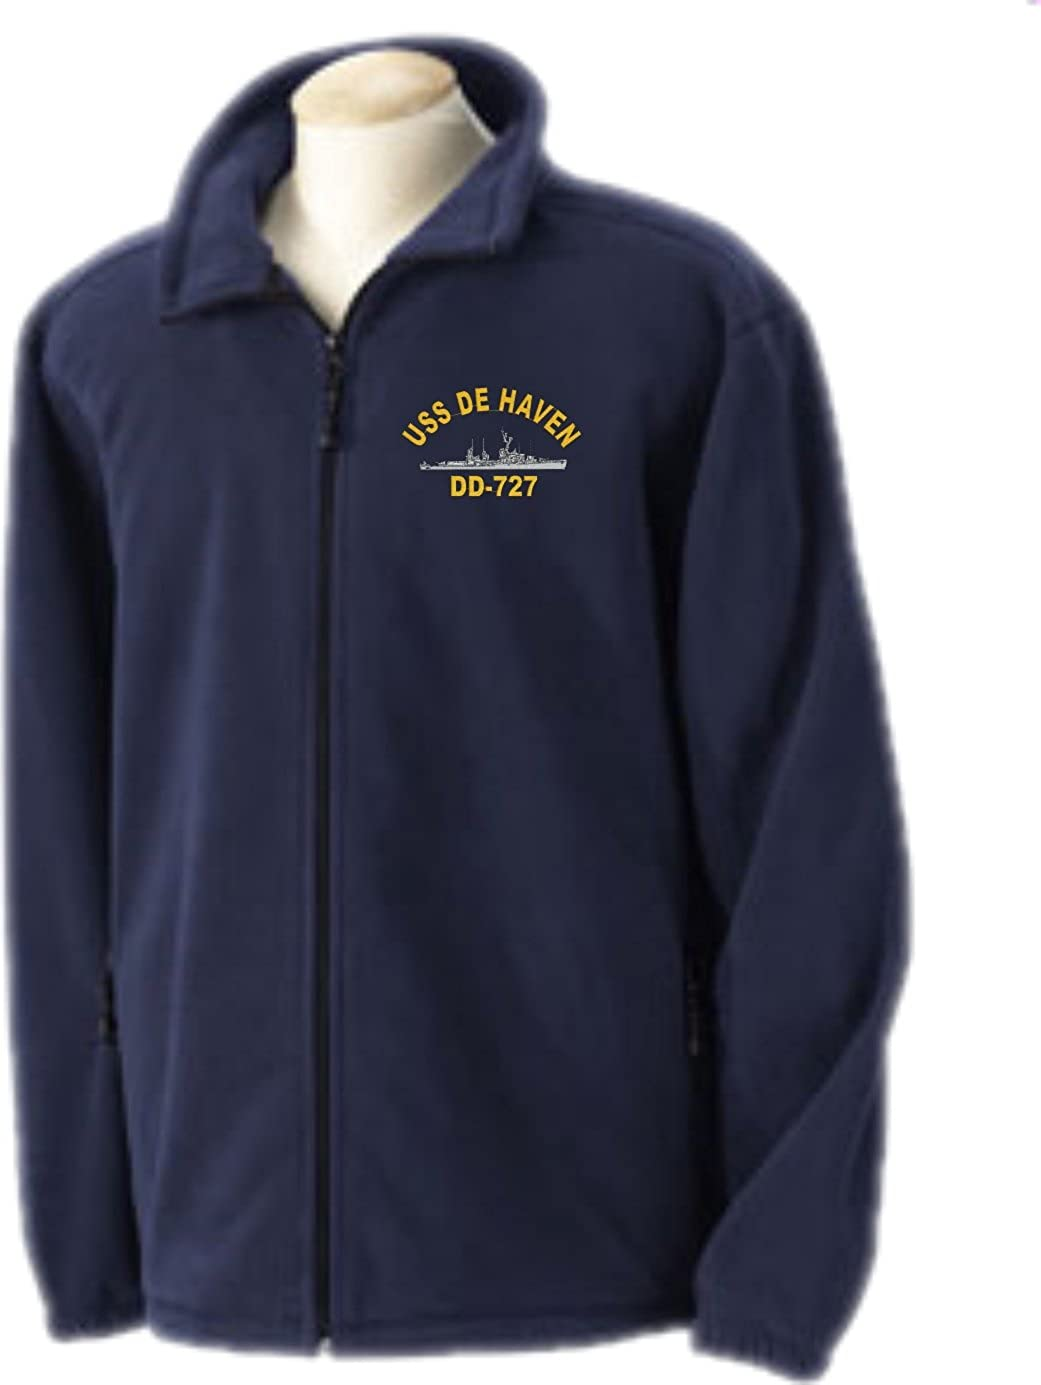 Custom Military Apparel USS DE Haven DD-727 Embroidered Fleece Jacket Sizes Small-4X